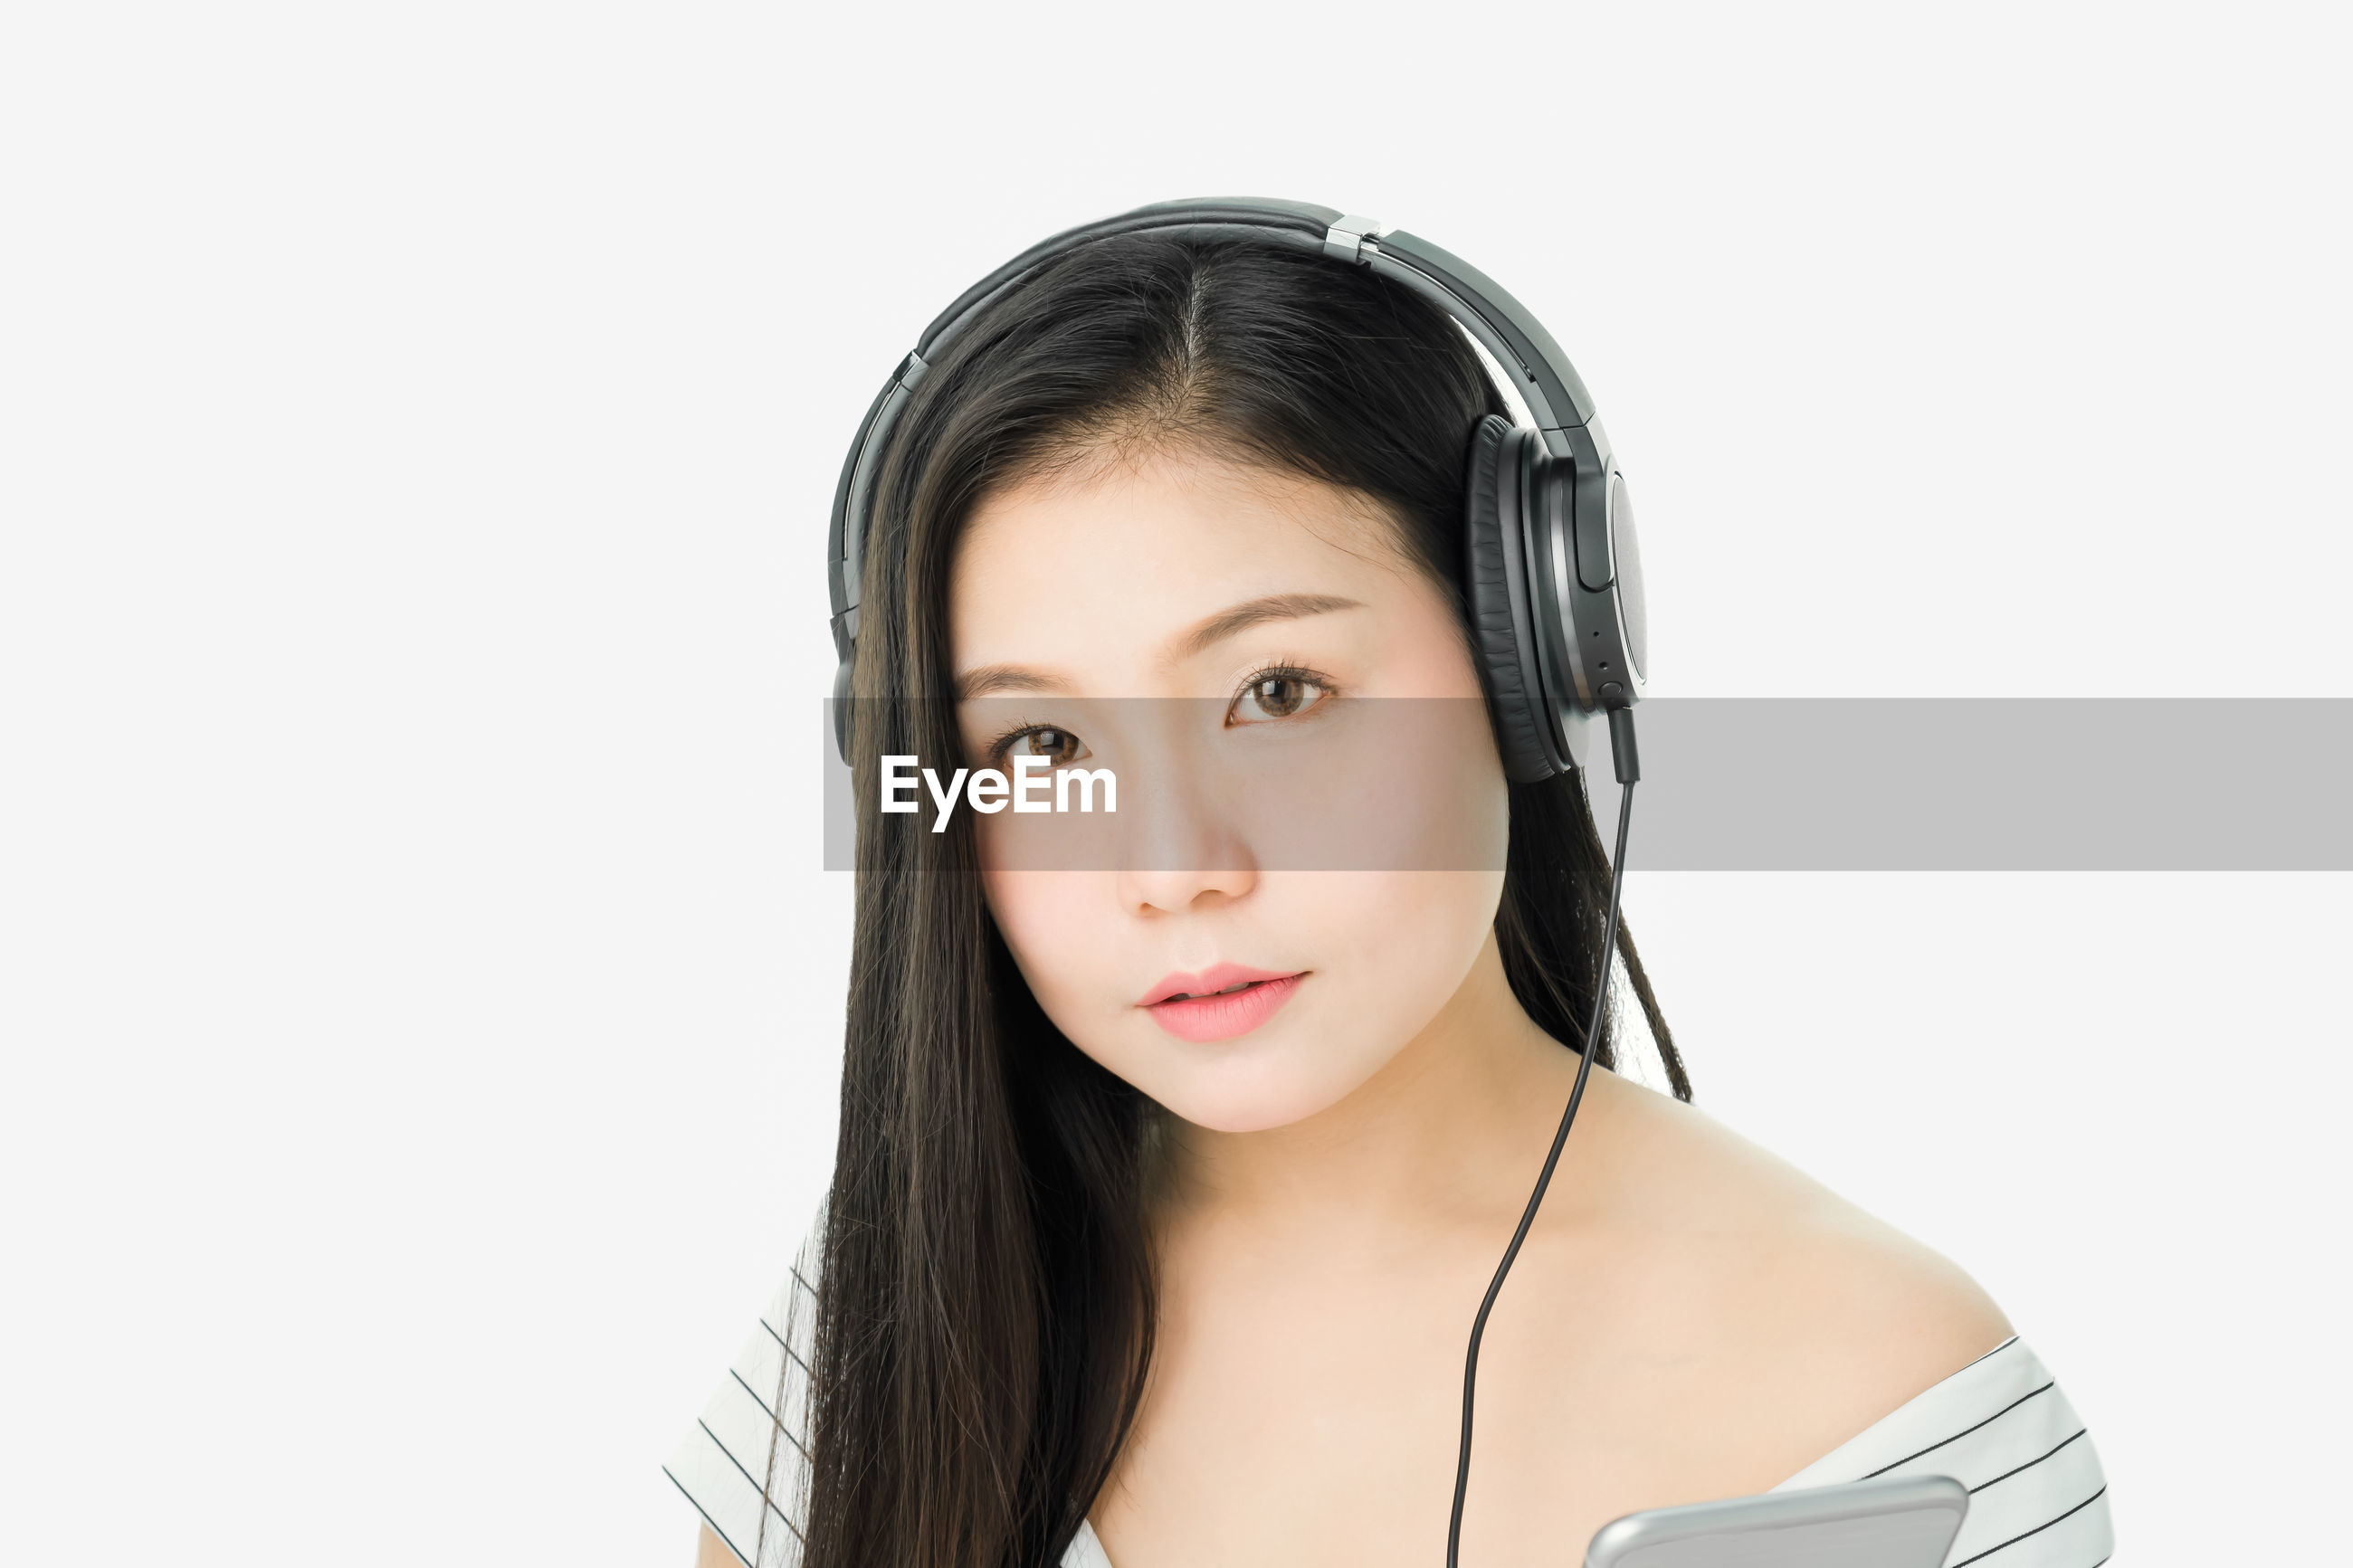 Portrait of young woman listening to music through headphones against white background